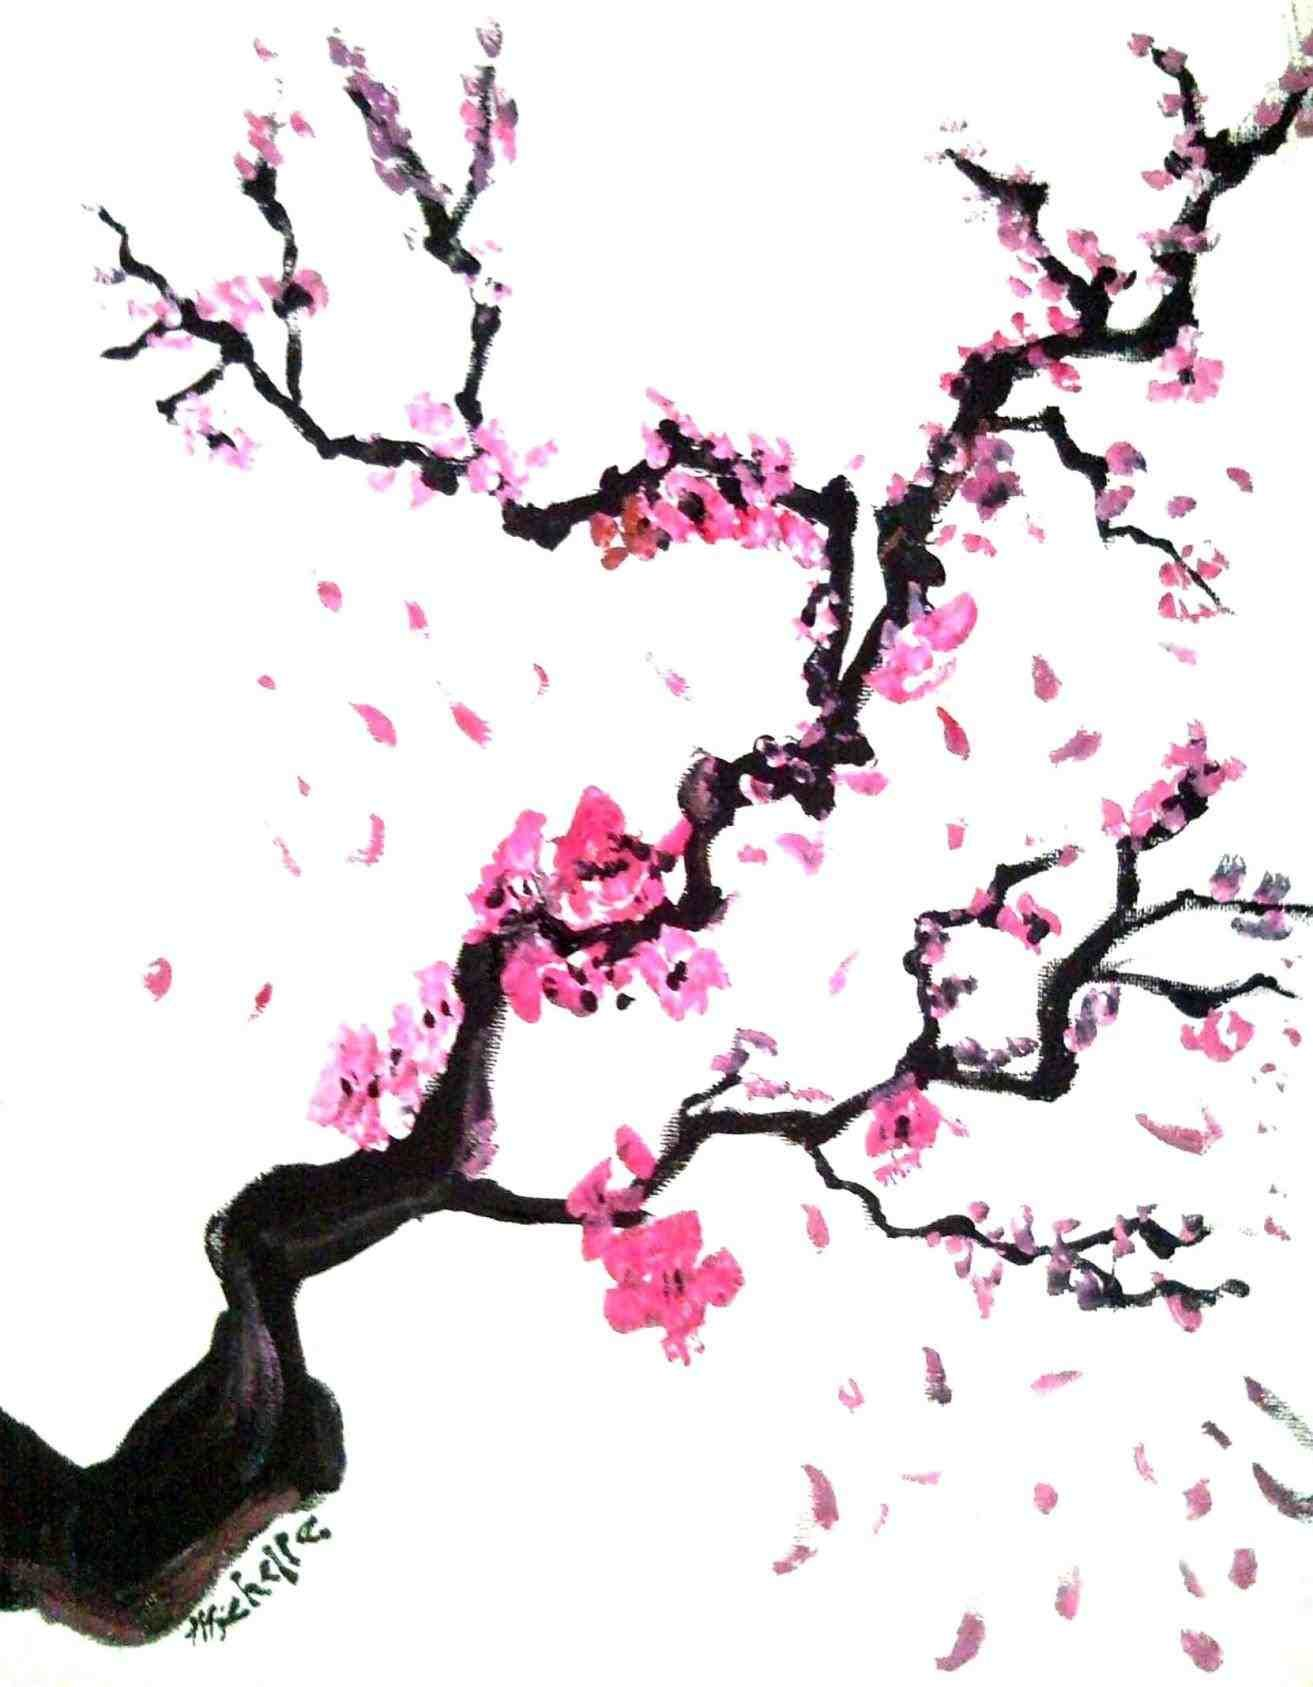 Chinese Blossom Tree Drawing Cherry Blossom Art Cherry Blossom Drawing Cherry Blossom Painting